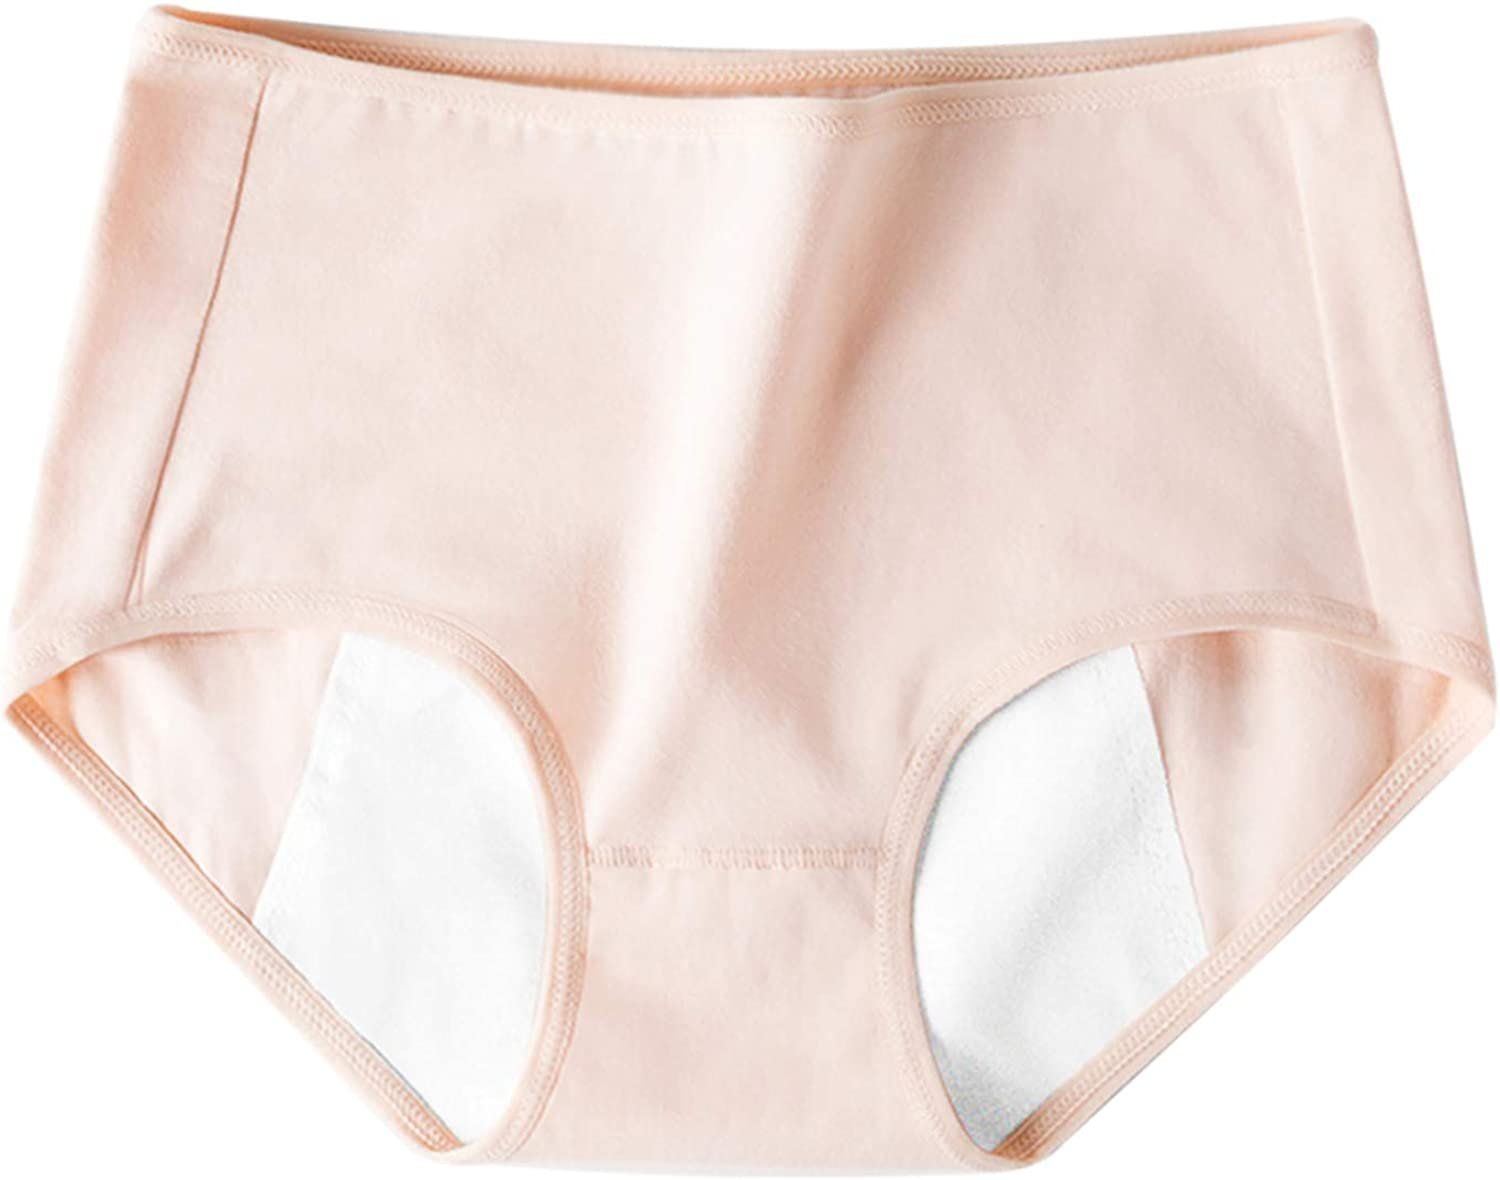 Womens Underwear Cotton Solid Breathable Panties Mid High Waisted Comfy Casual Wear Compression Brief Petite Plus Size